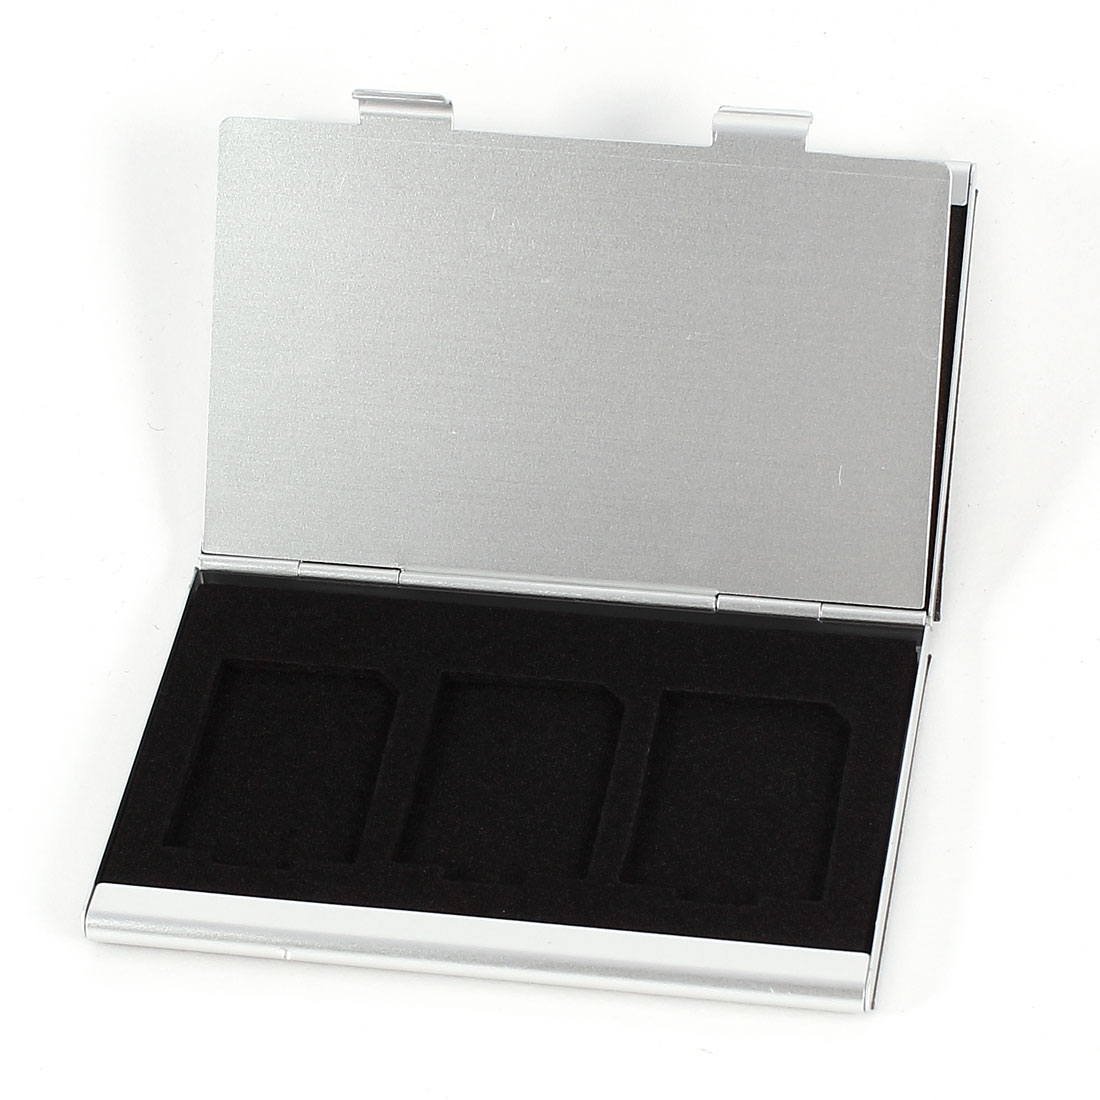 Black Faux Leather Coated 5 Capacity SD SDHC Memory Card Holder Case Silver Tone